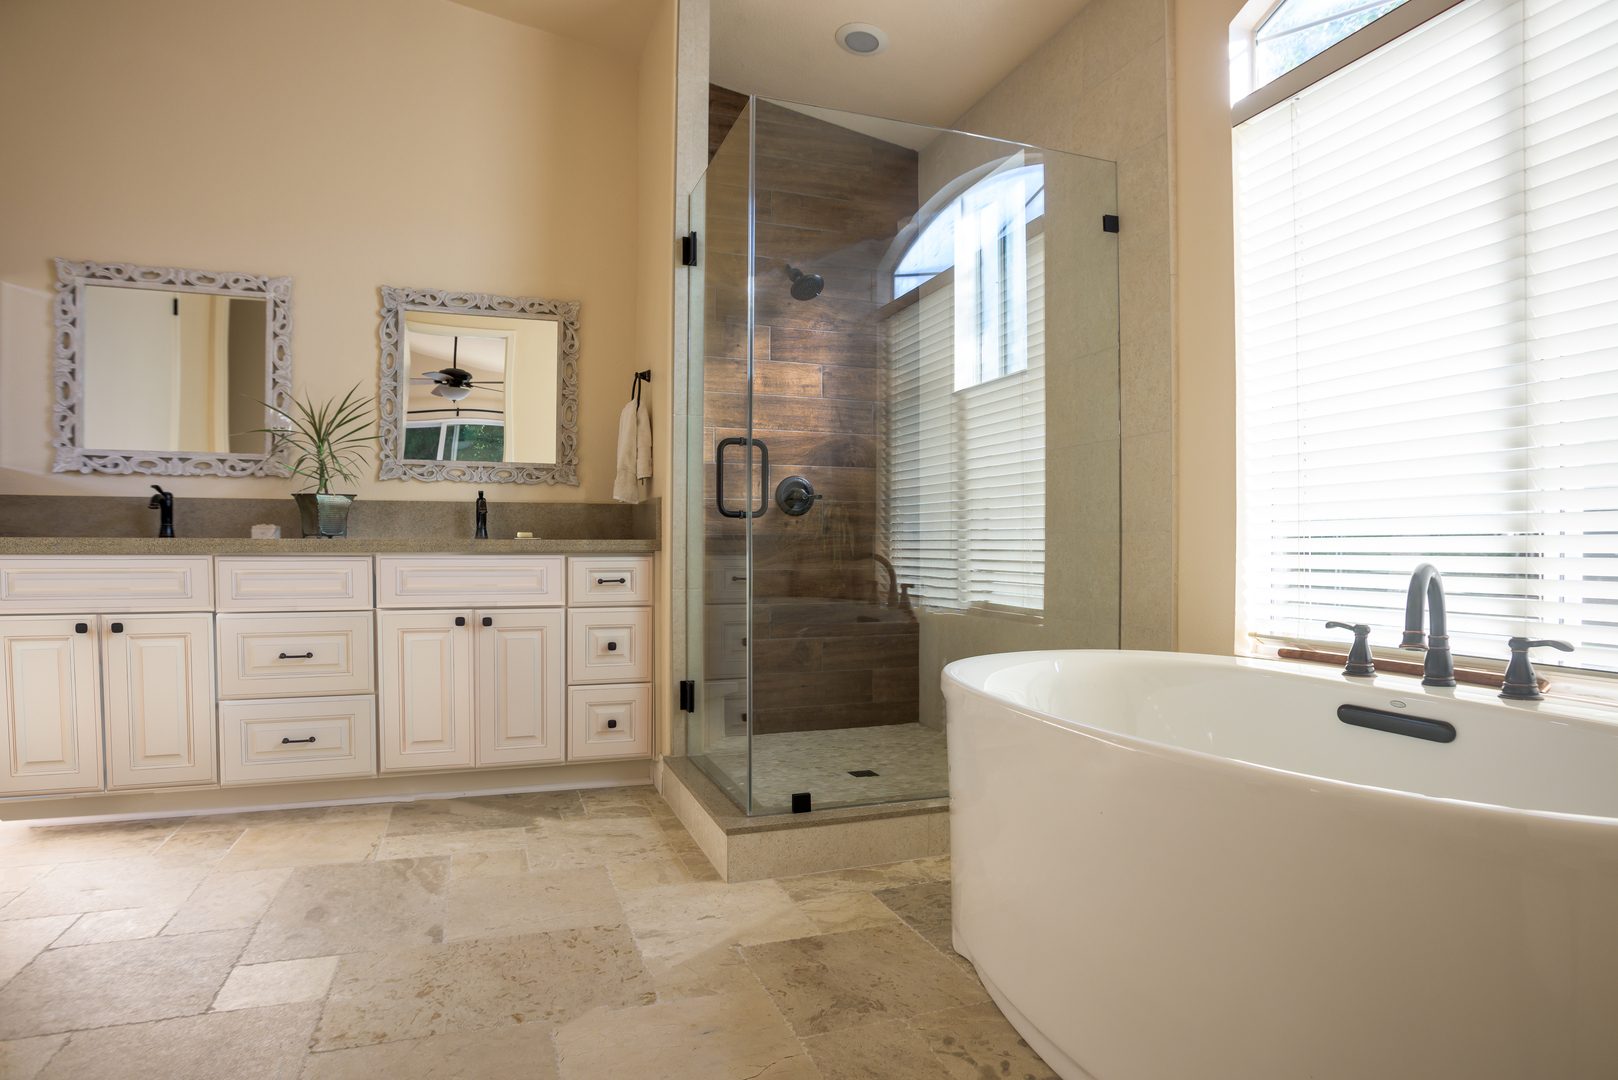 Premier Tile And Stone Granite Countertops Tile Flooring Wood - Bathroom remodel temecula